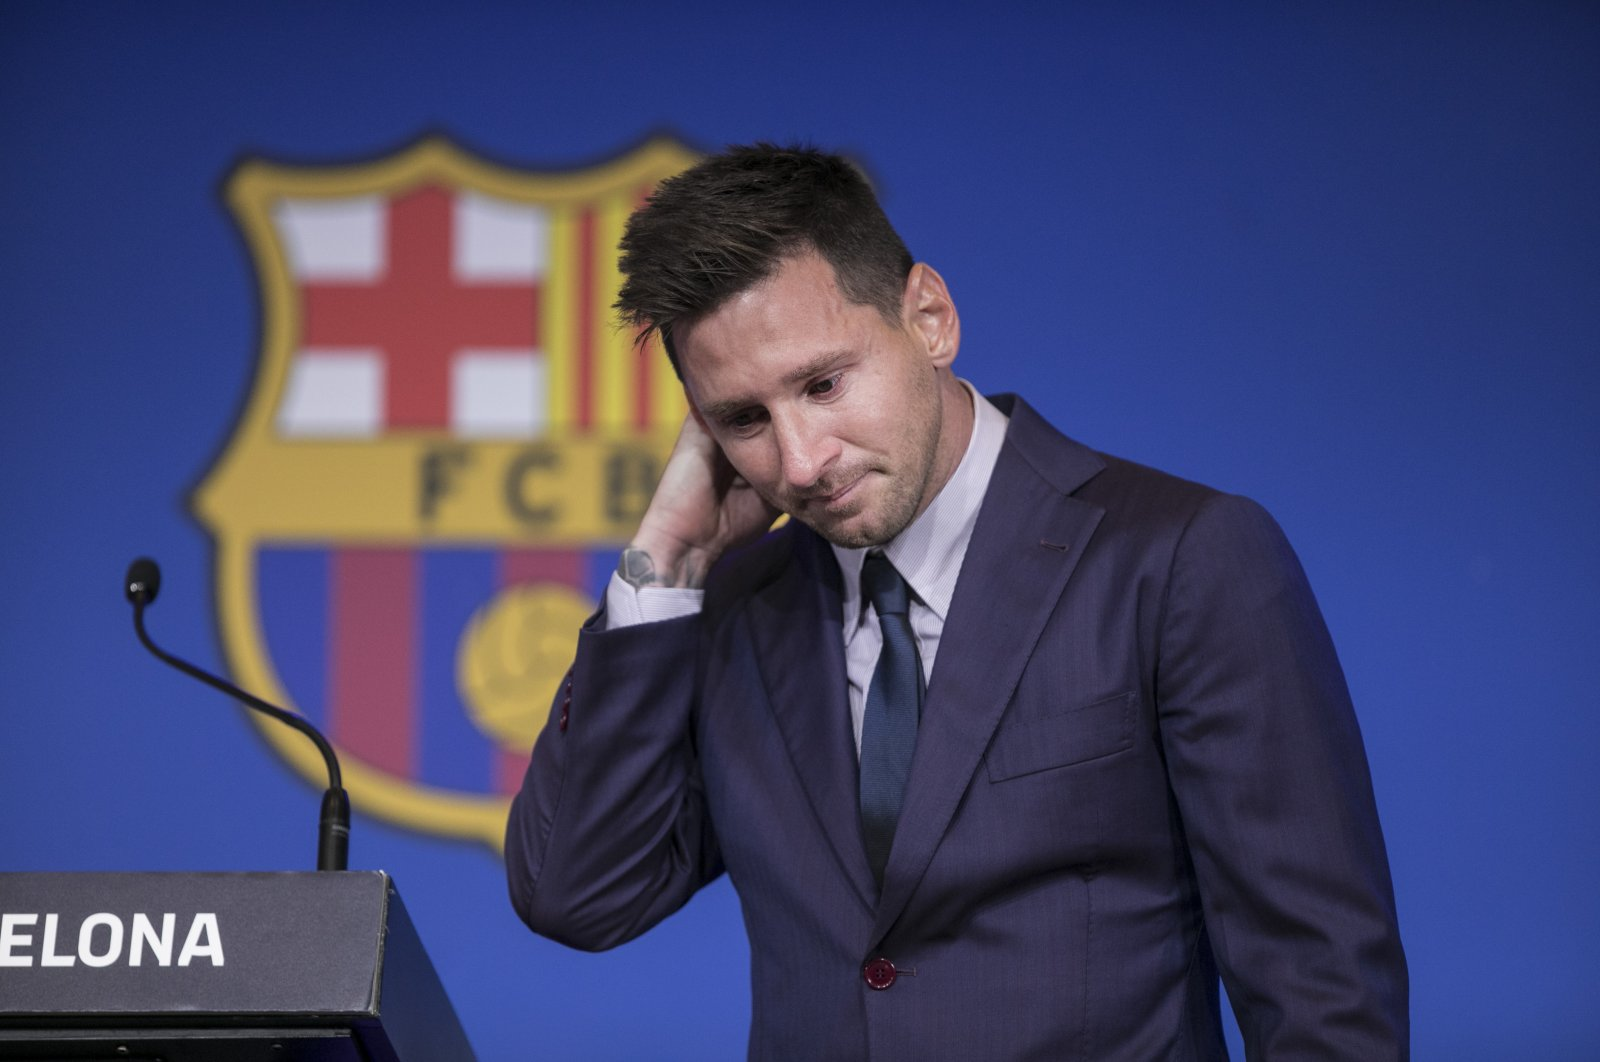 Lionel Messi reacts during his final press conference for Barcelona at Camp Nou, Barcelona, Spain, Aug. 8, 2021. (AA Photo)